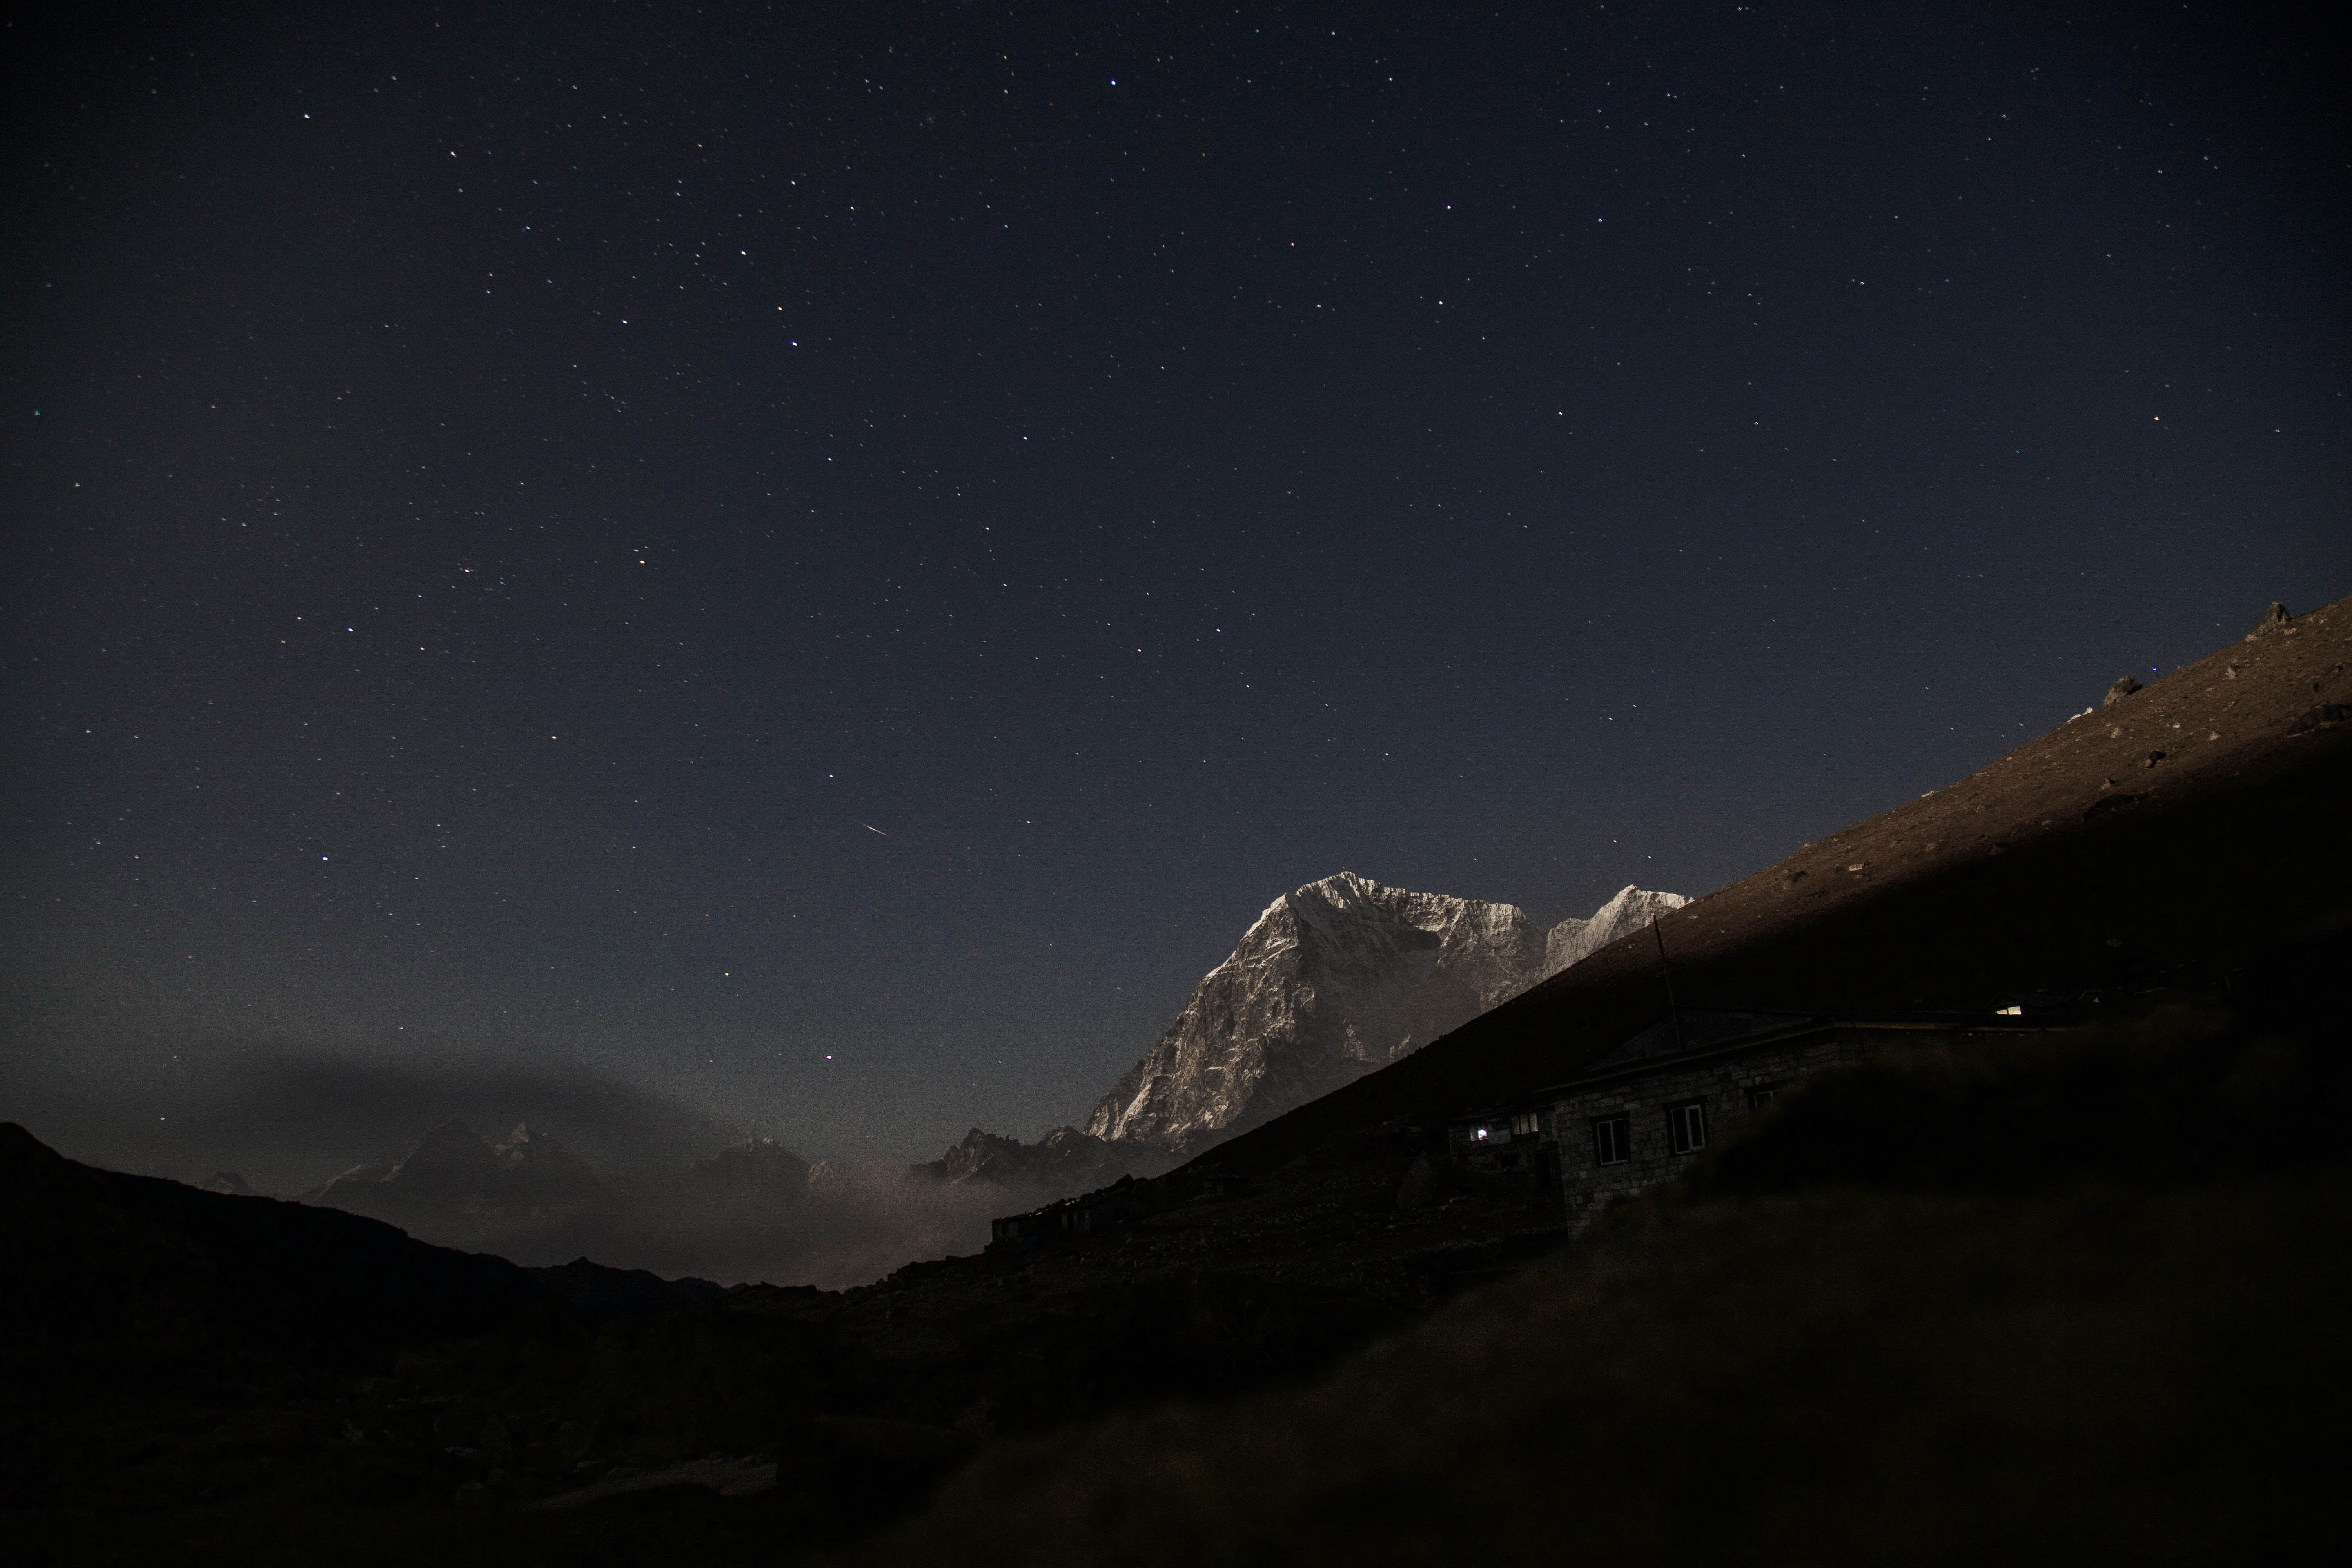 Starry night sky over the towering mountains in Nepal